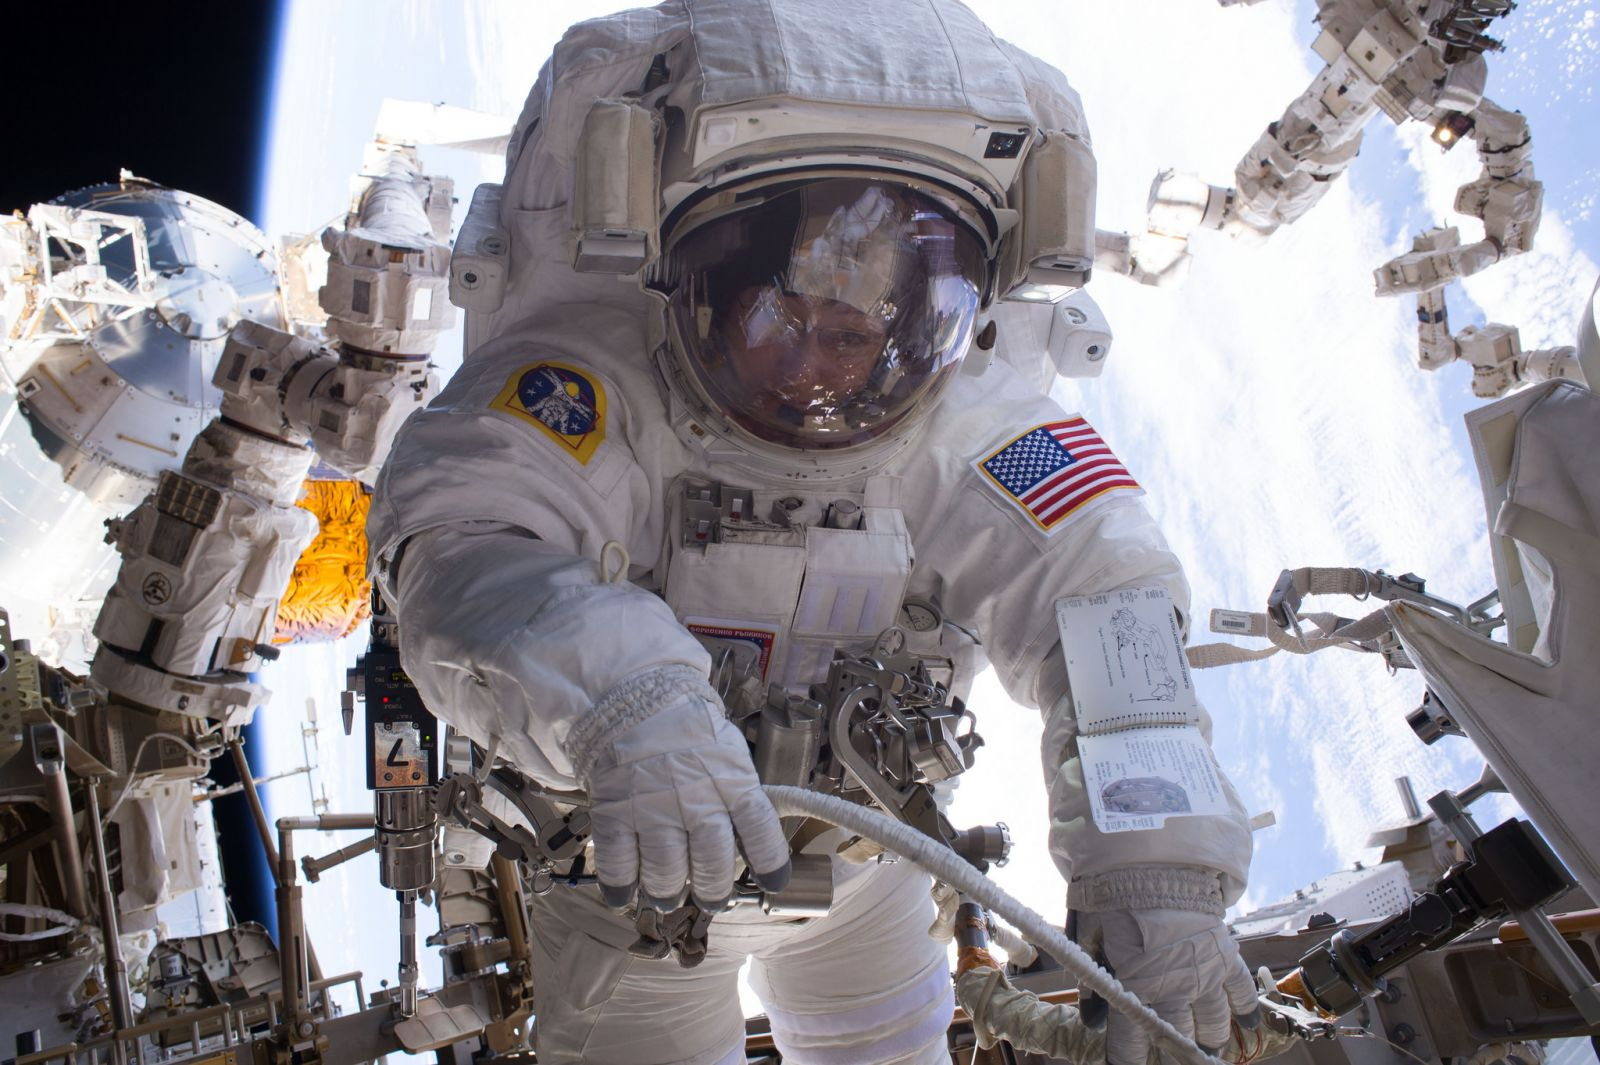 Peggy Whitson during her seventh spacewalk in January 2017